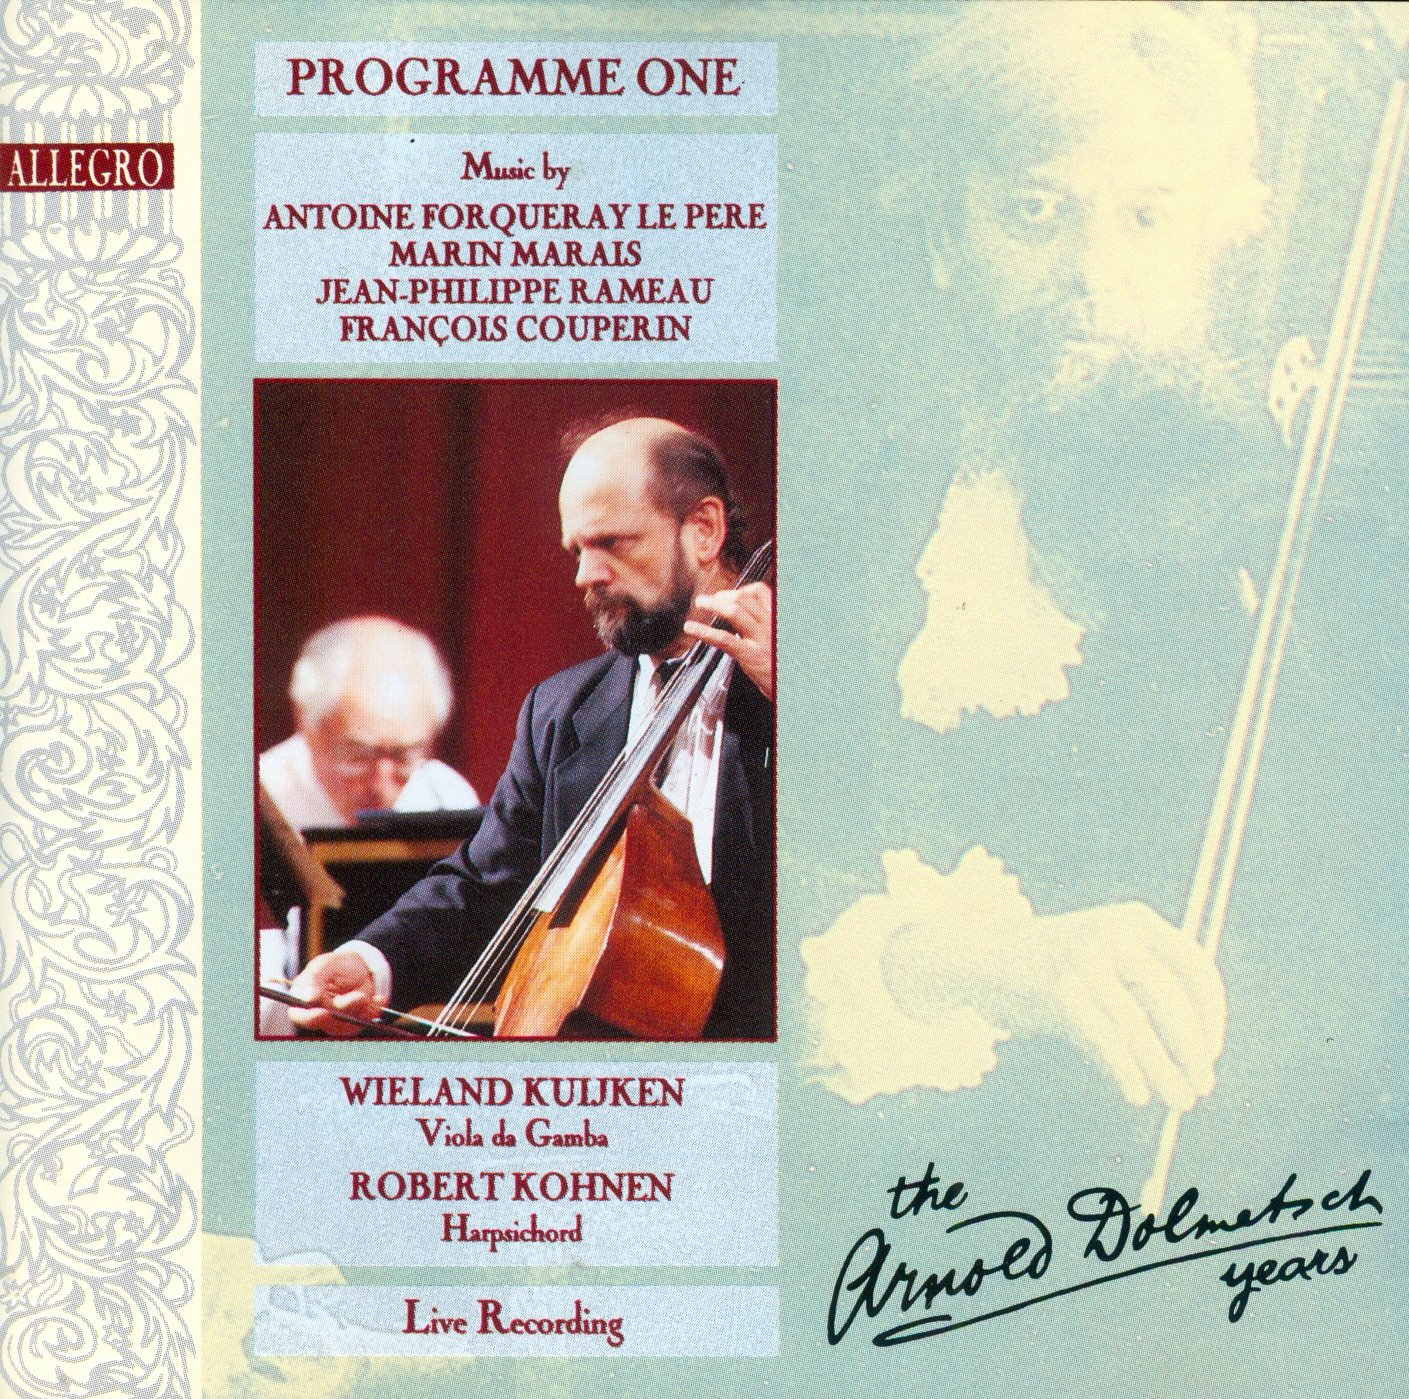 The Arnold Dolmetsch Years, Programme 1